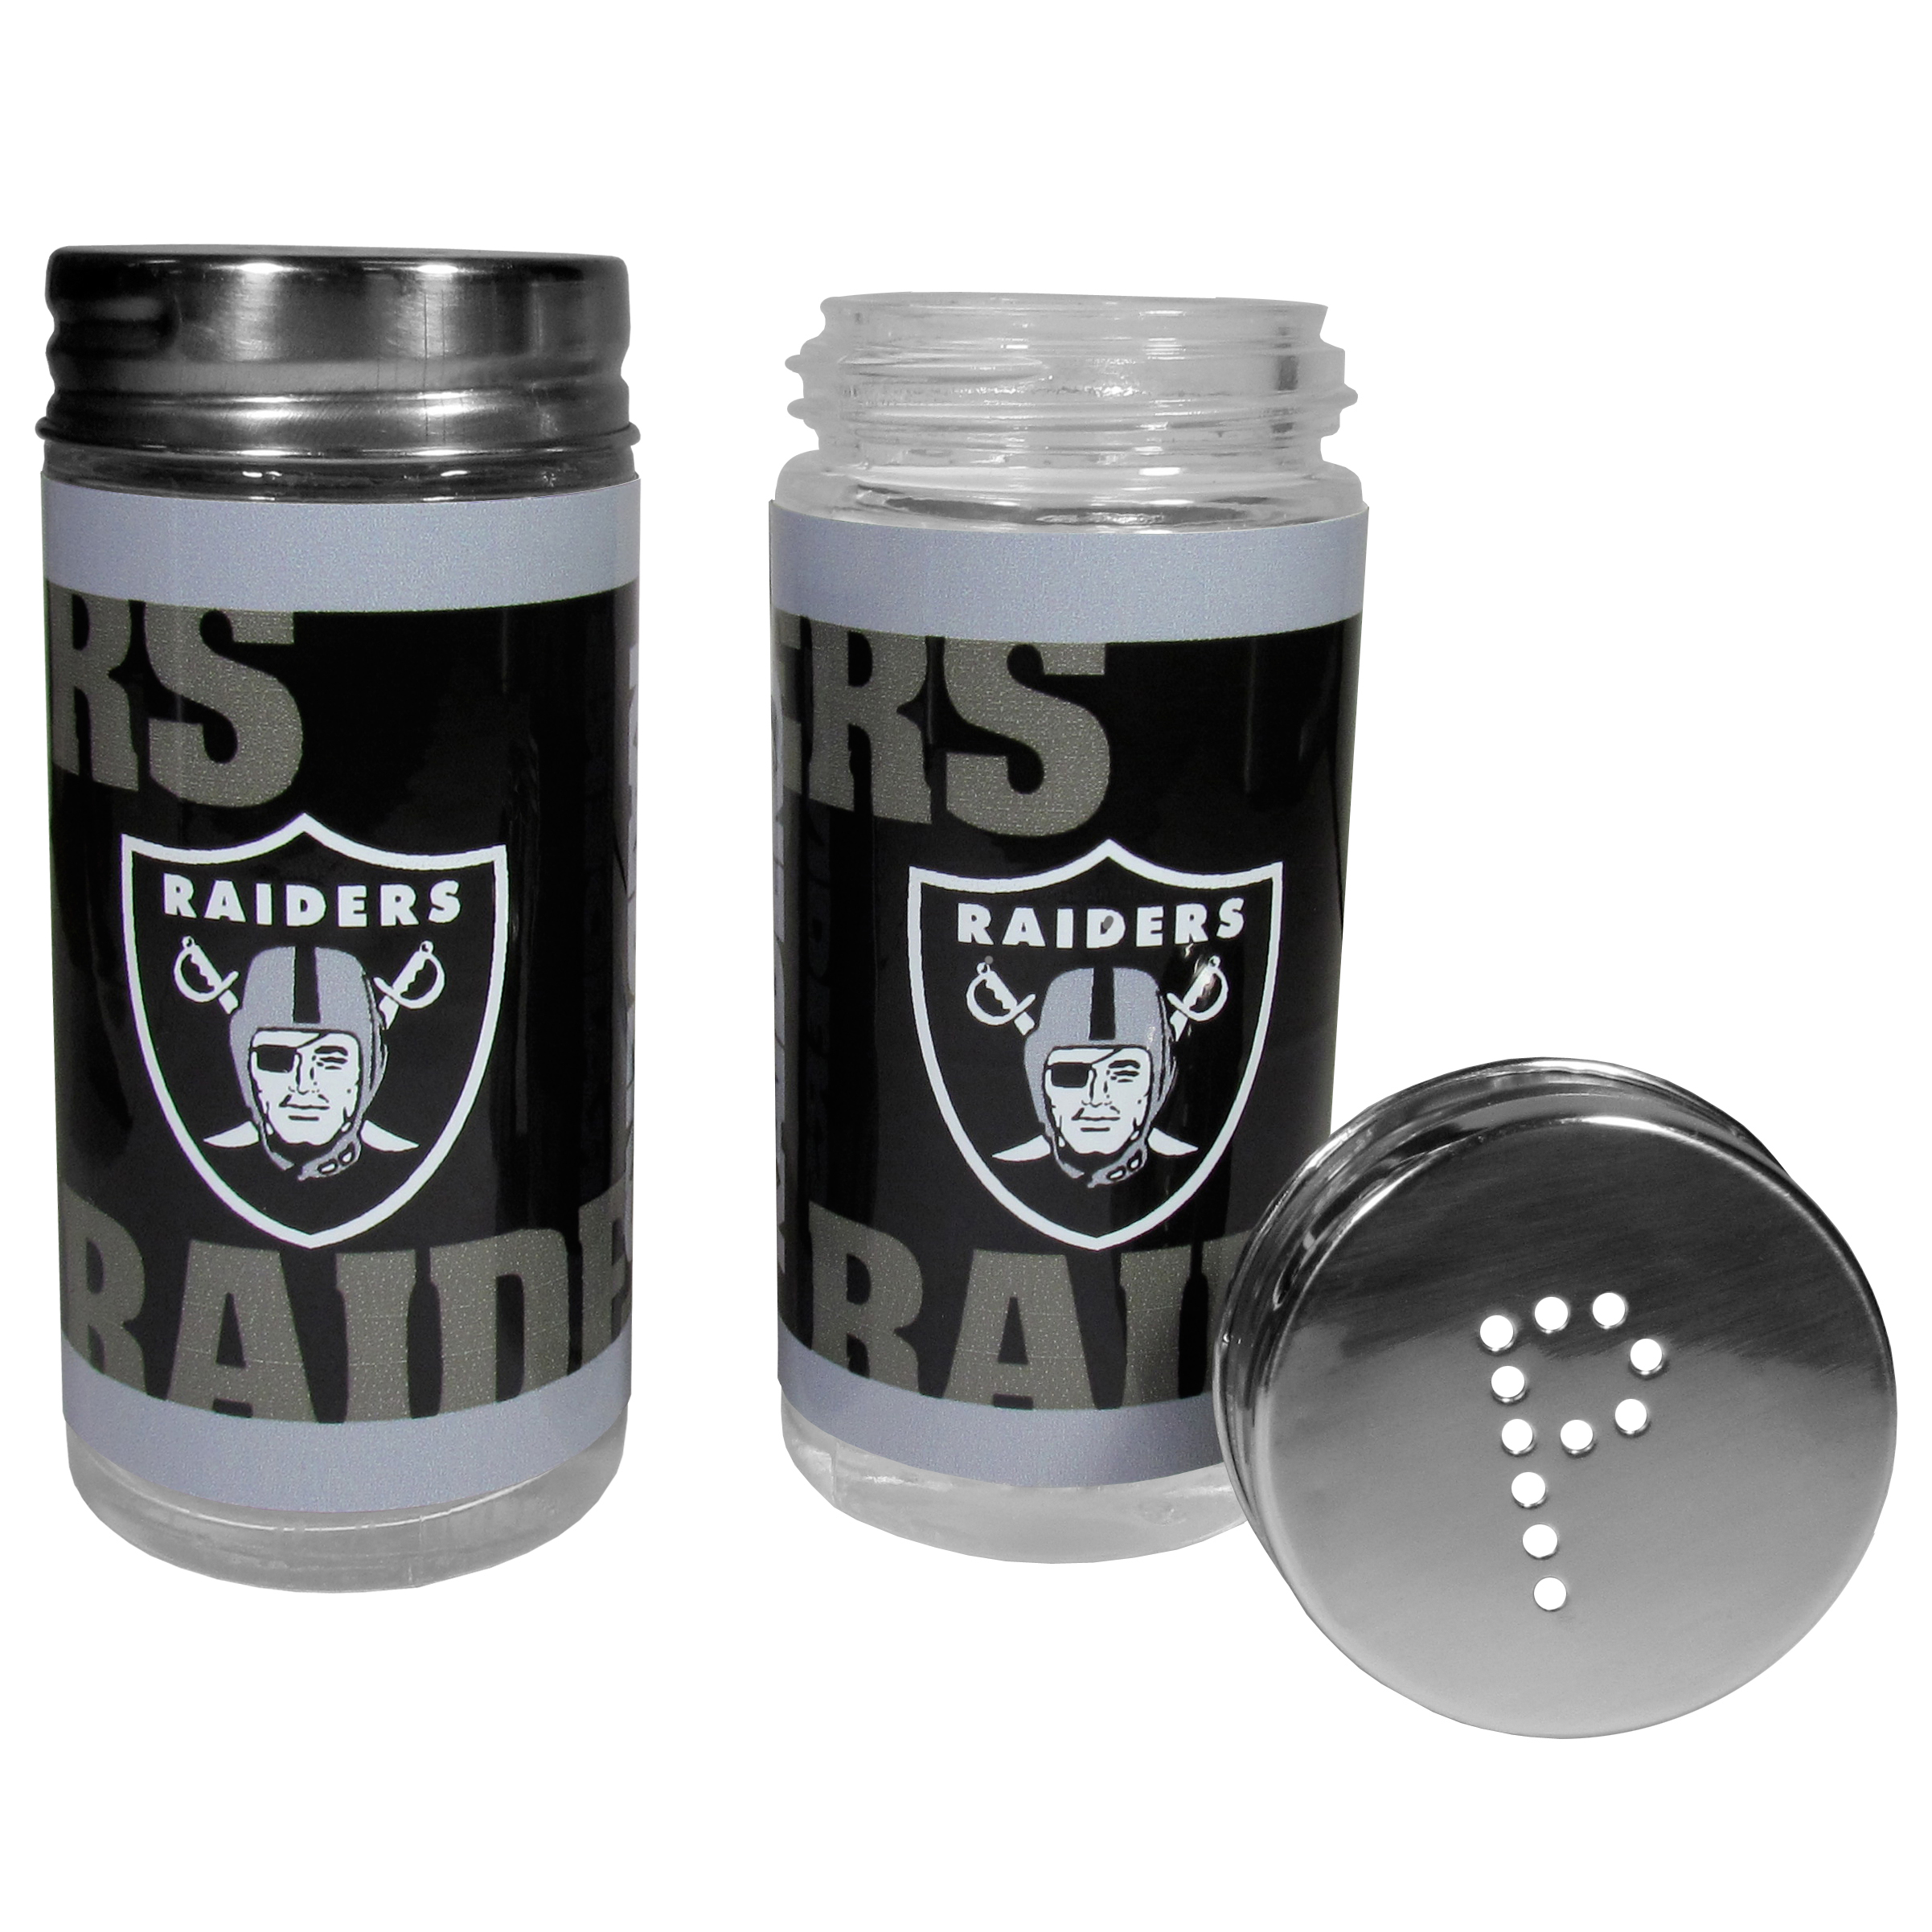 Oakland Raiders Tailgater Salt & Pepper Shakers - No tailgate party is complete without your Oakland Raiders salt & pepper shakers featuring bright team graphics. The glass shakers are 3.75 inches tall and the screw top lids have holes that spell out P and S. These team shakers are a great grill accessory whether you are barbecuing on the patio, picnicing or having a game day party.